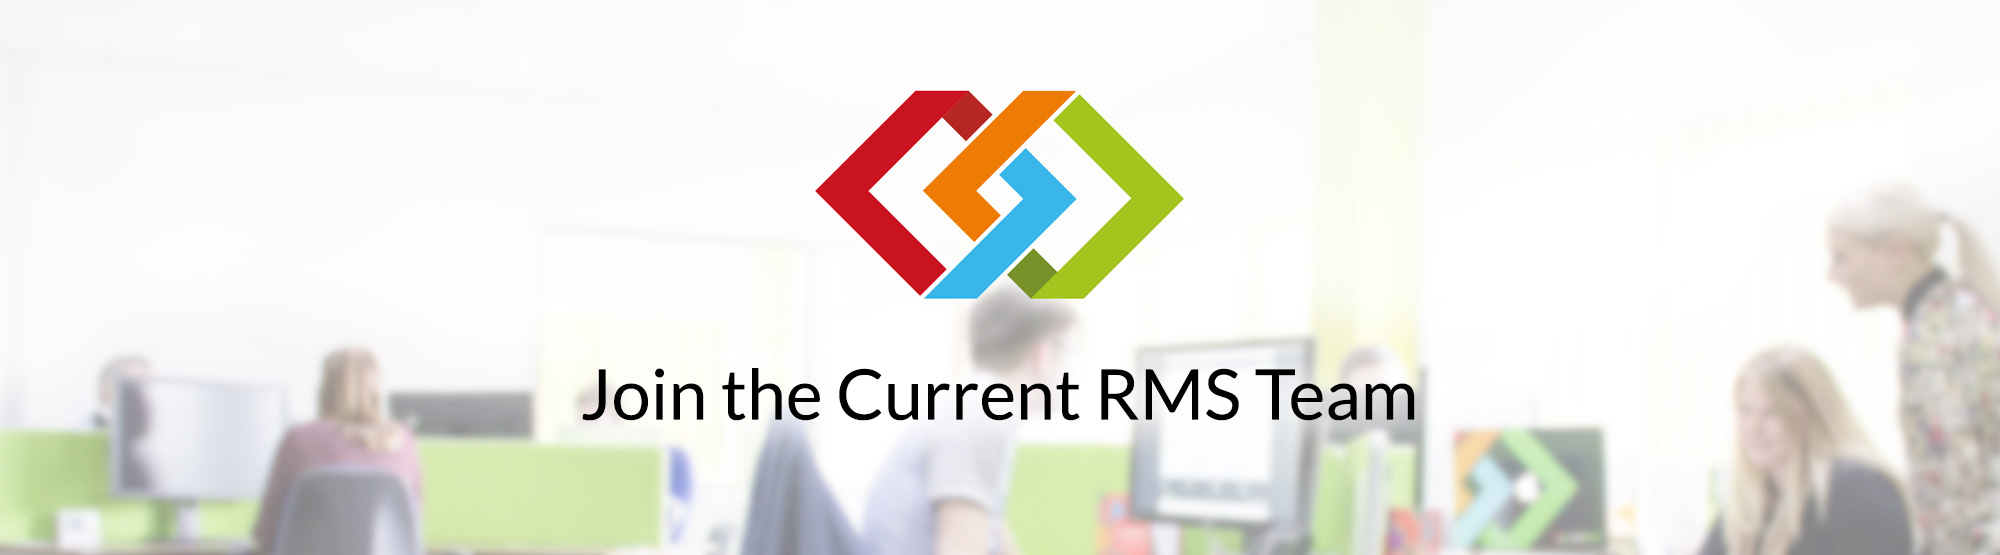 Join the team at Current RMS